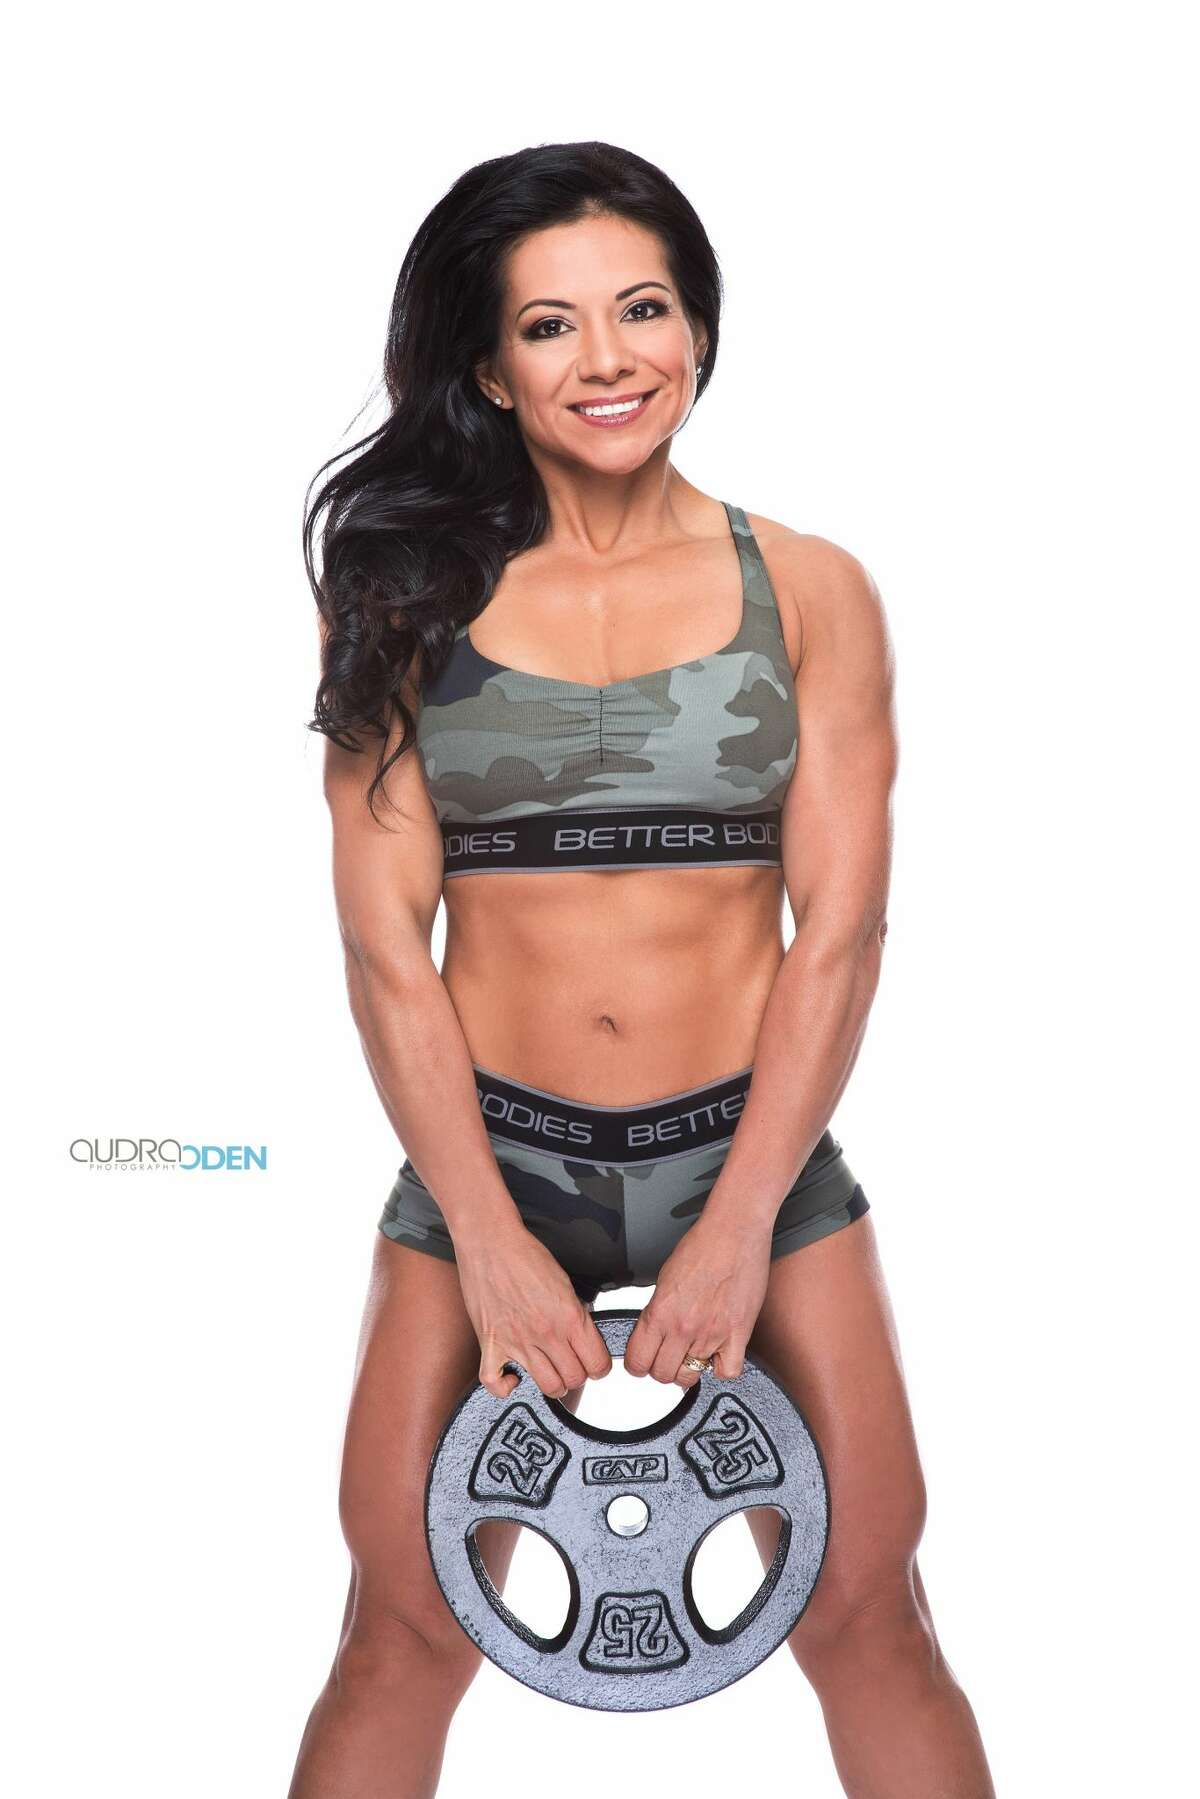 Llyda Martinez AGE: 41 GYM/STUDIO: MTZ Studio/Train Insane Fitness, 1900 Garth Rd, Baytown THE 411: NASM certified nutrition specialist, certified fitness trainer. Also, certified in group fitness, Insanity Live, P90X Life, Turbo Kick Life and PiYo Live WHAT FANS SAY: